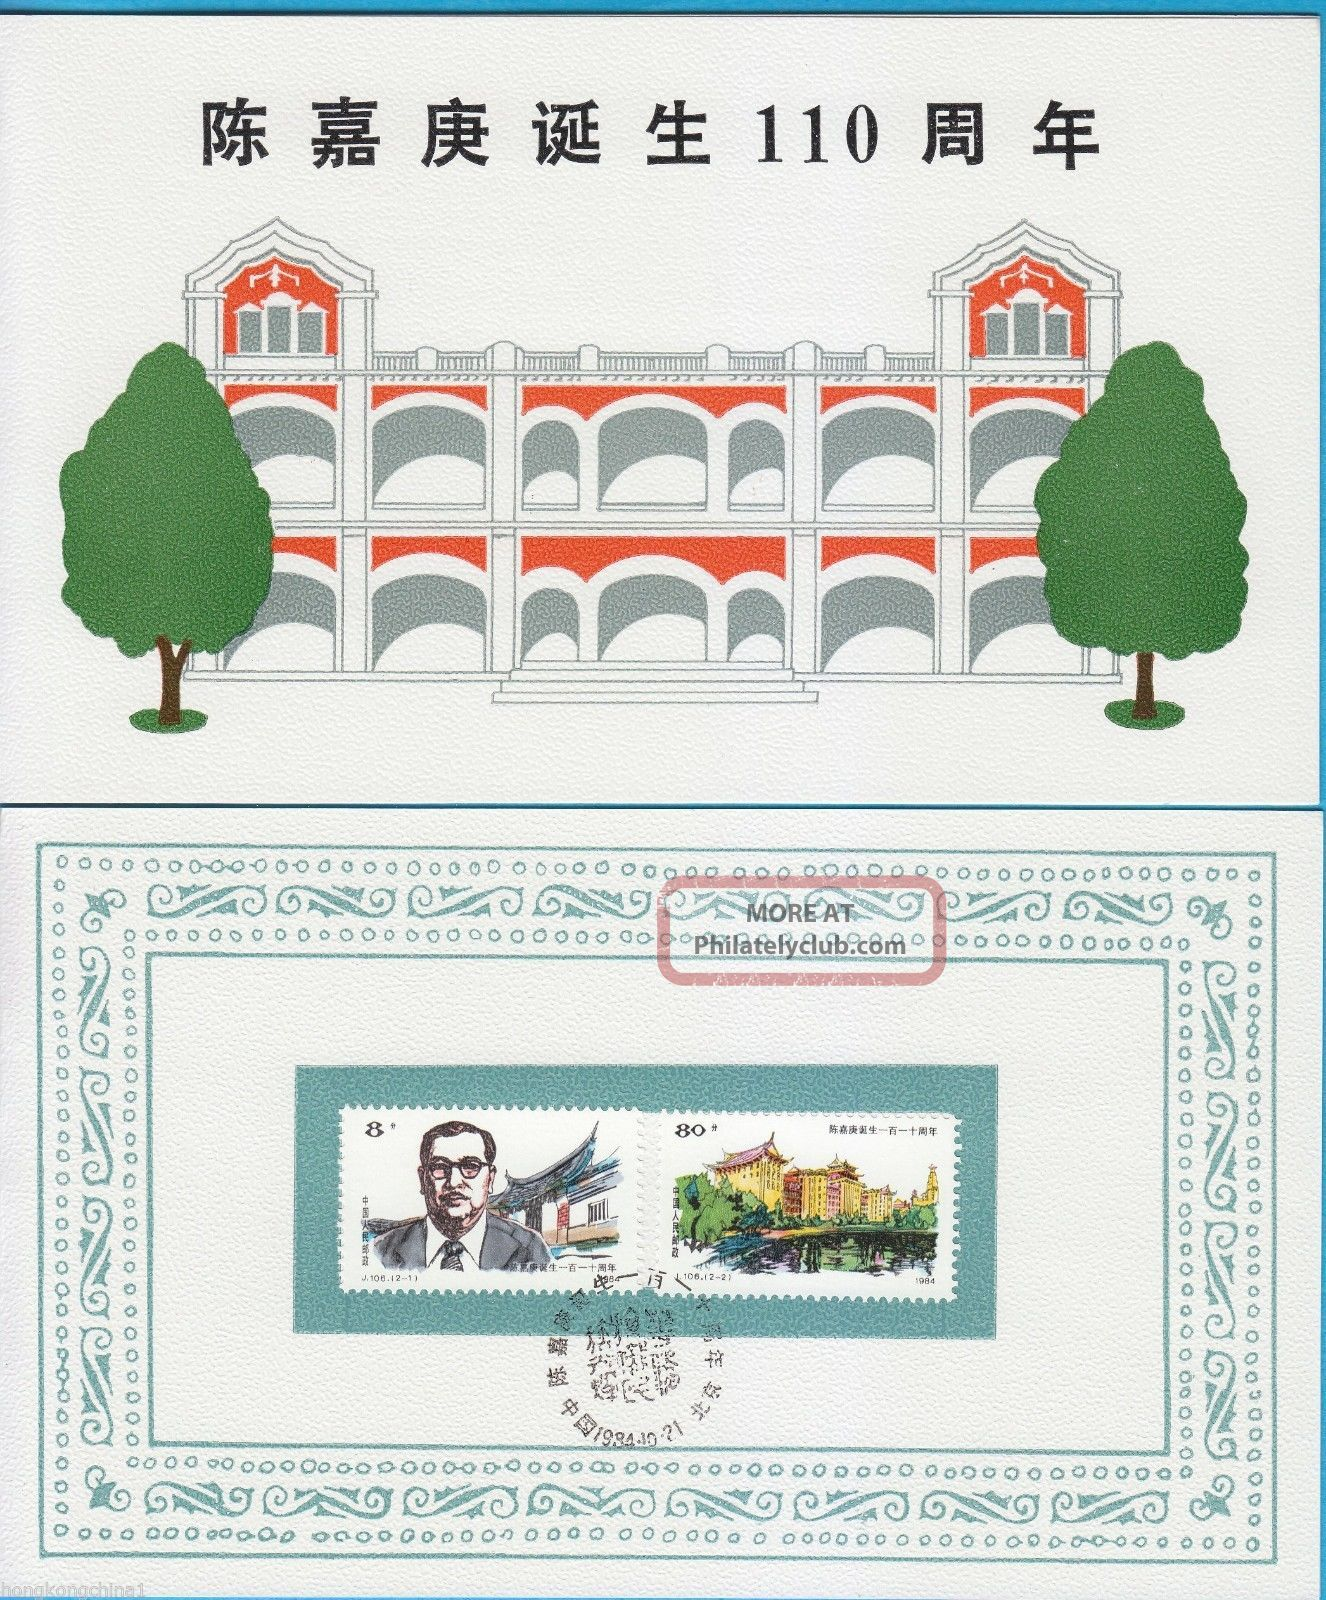 China Stamp Fdc 1984 J106 The 110th Anniv Of The Birth Of Chen Jiageng Cn134698 Asia photo